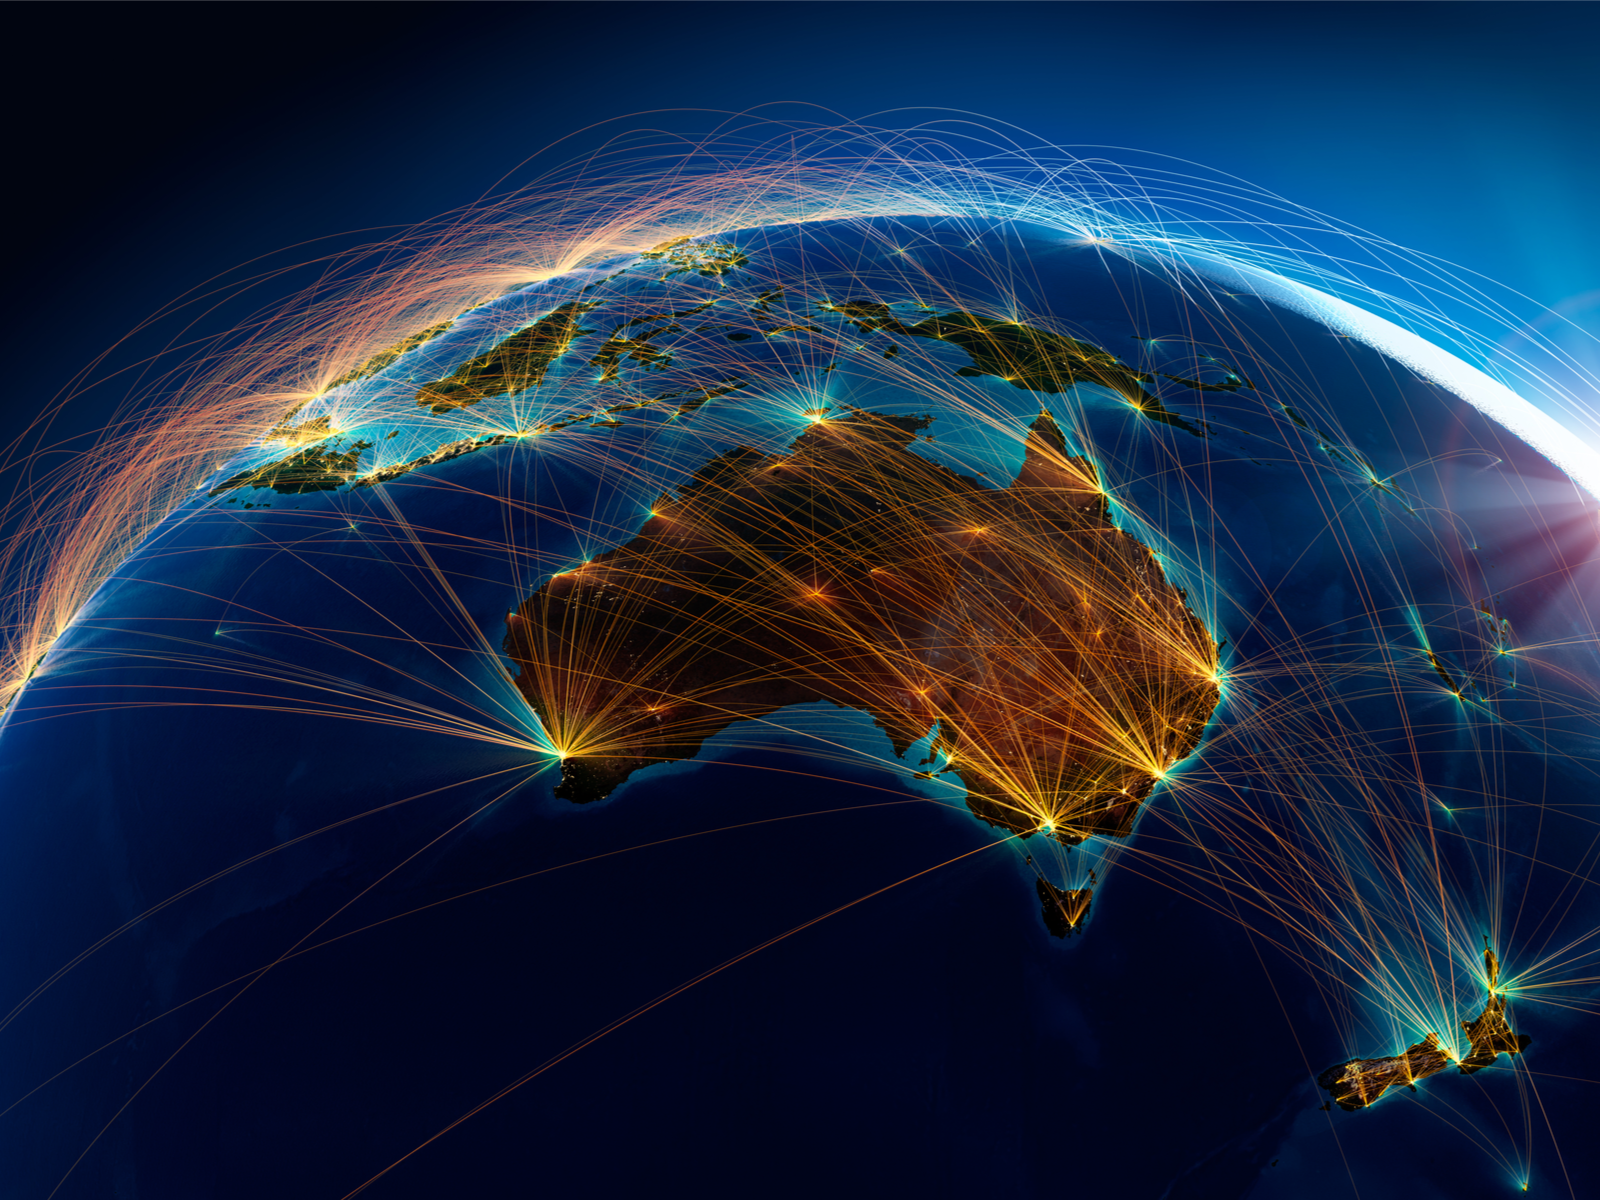 In the Daily: UAE Needs to Keep up With Crypto, Australia to Support Local Blockchain Industry - Bitcoin News